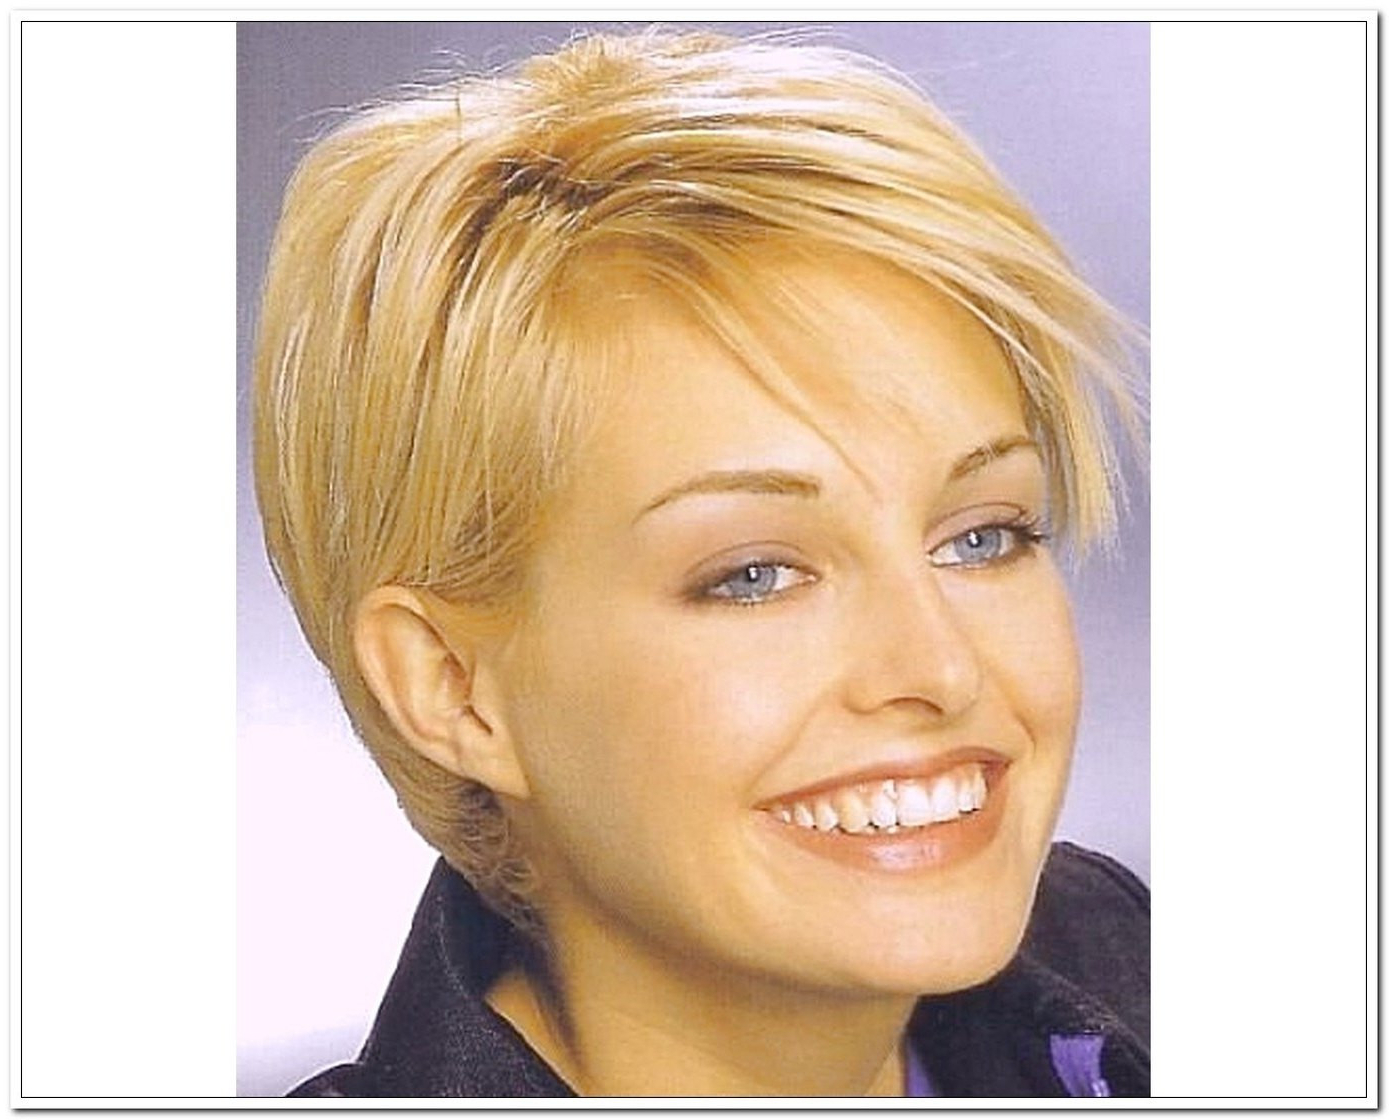 Fine Hair Round Face Short Hairstyles New New Short Haircuts For Fat In Short Haircuts For Fat Faces (View 21 of 25)